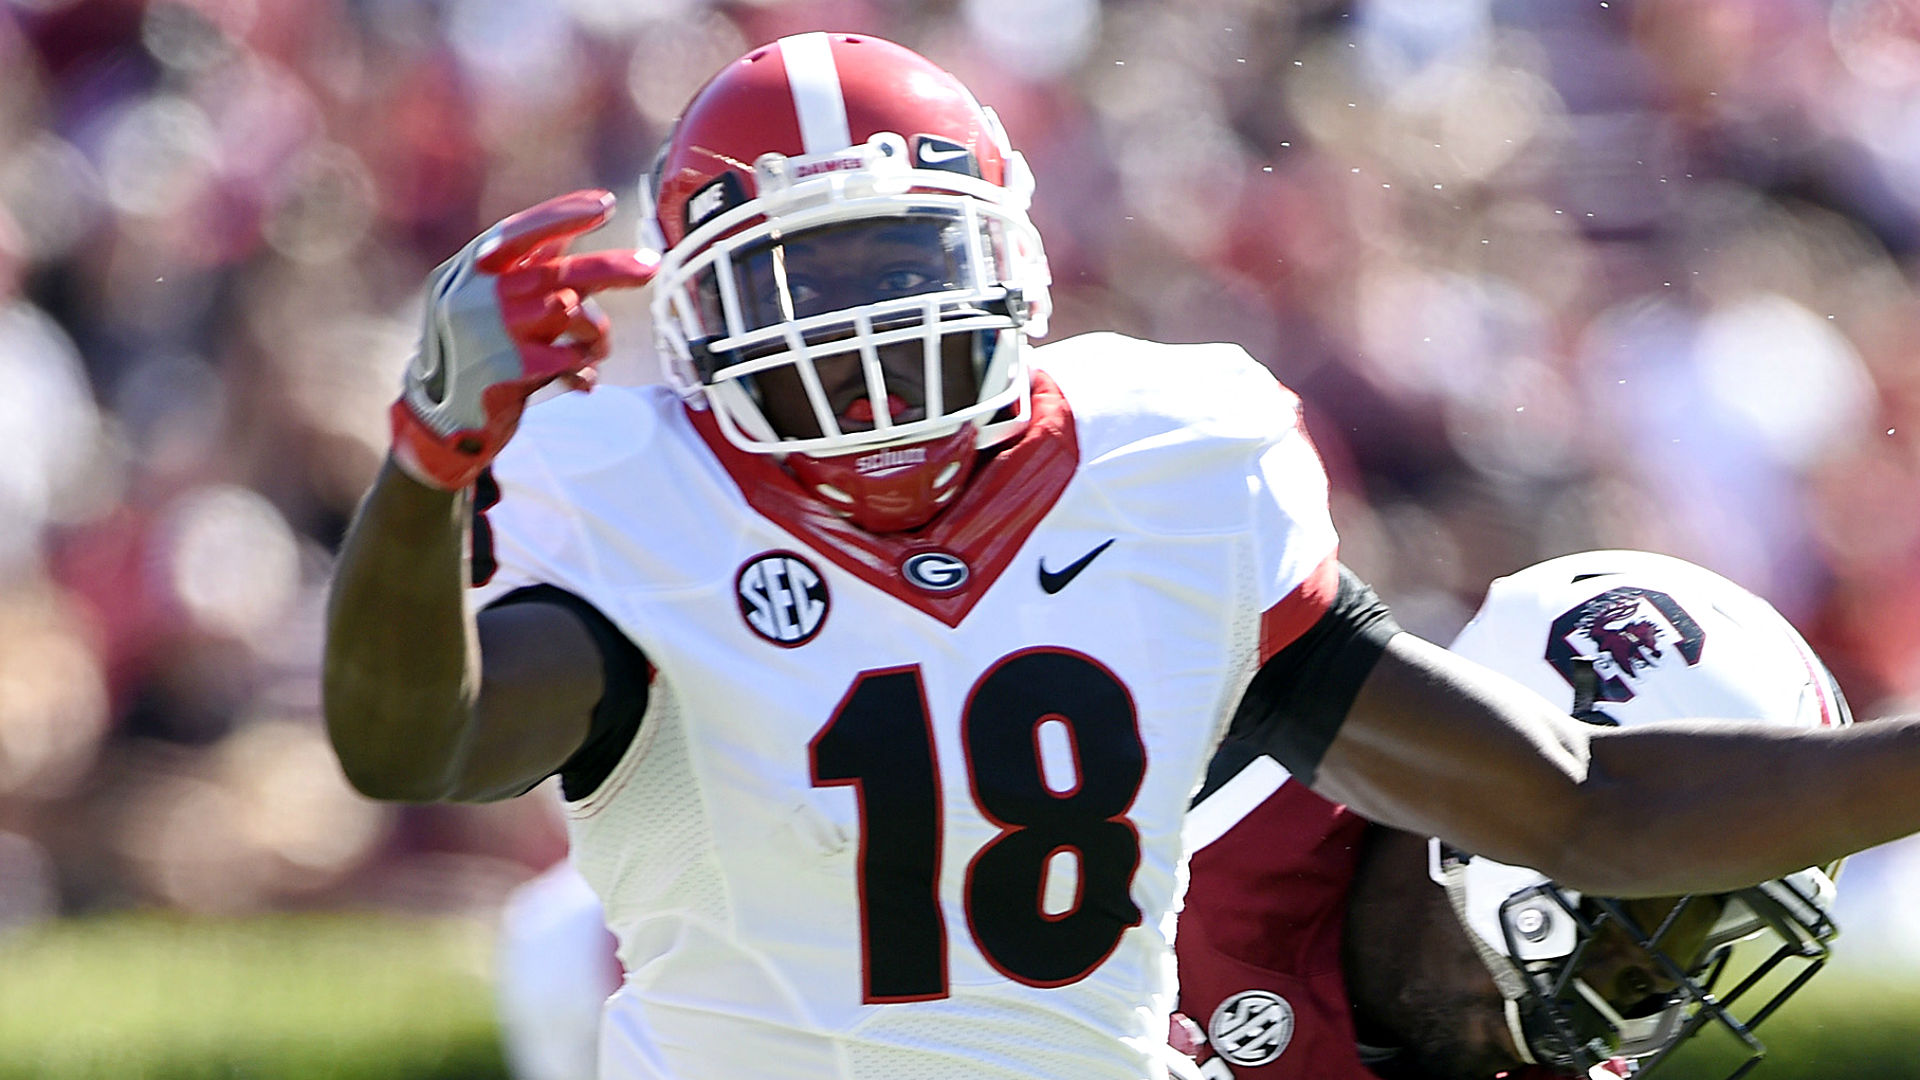 Georgia football coach Kirby Smart supports Deandre Baker's decision to skip bowl